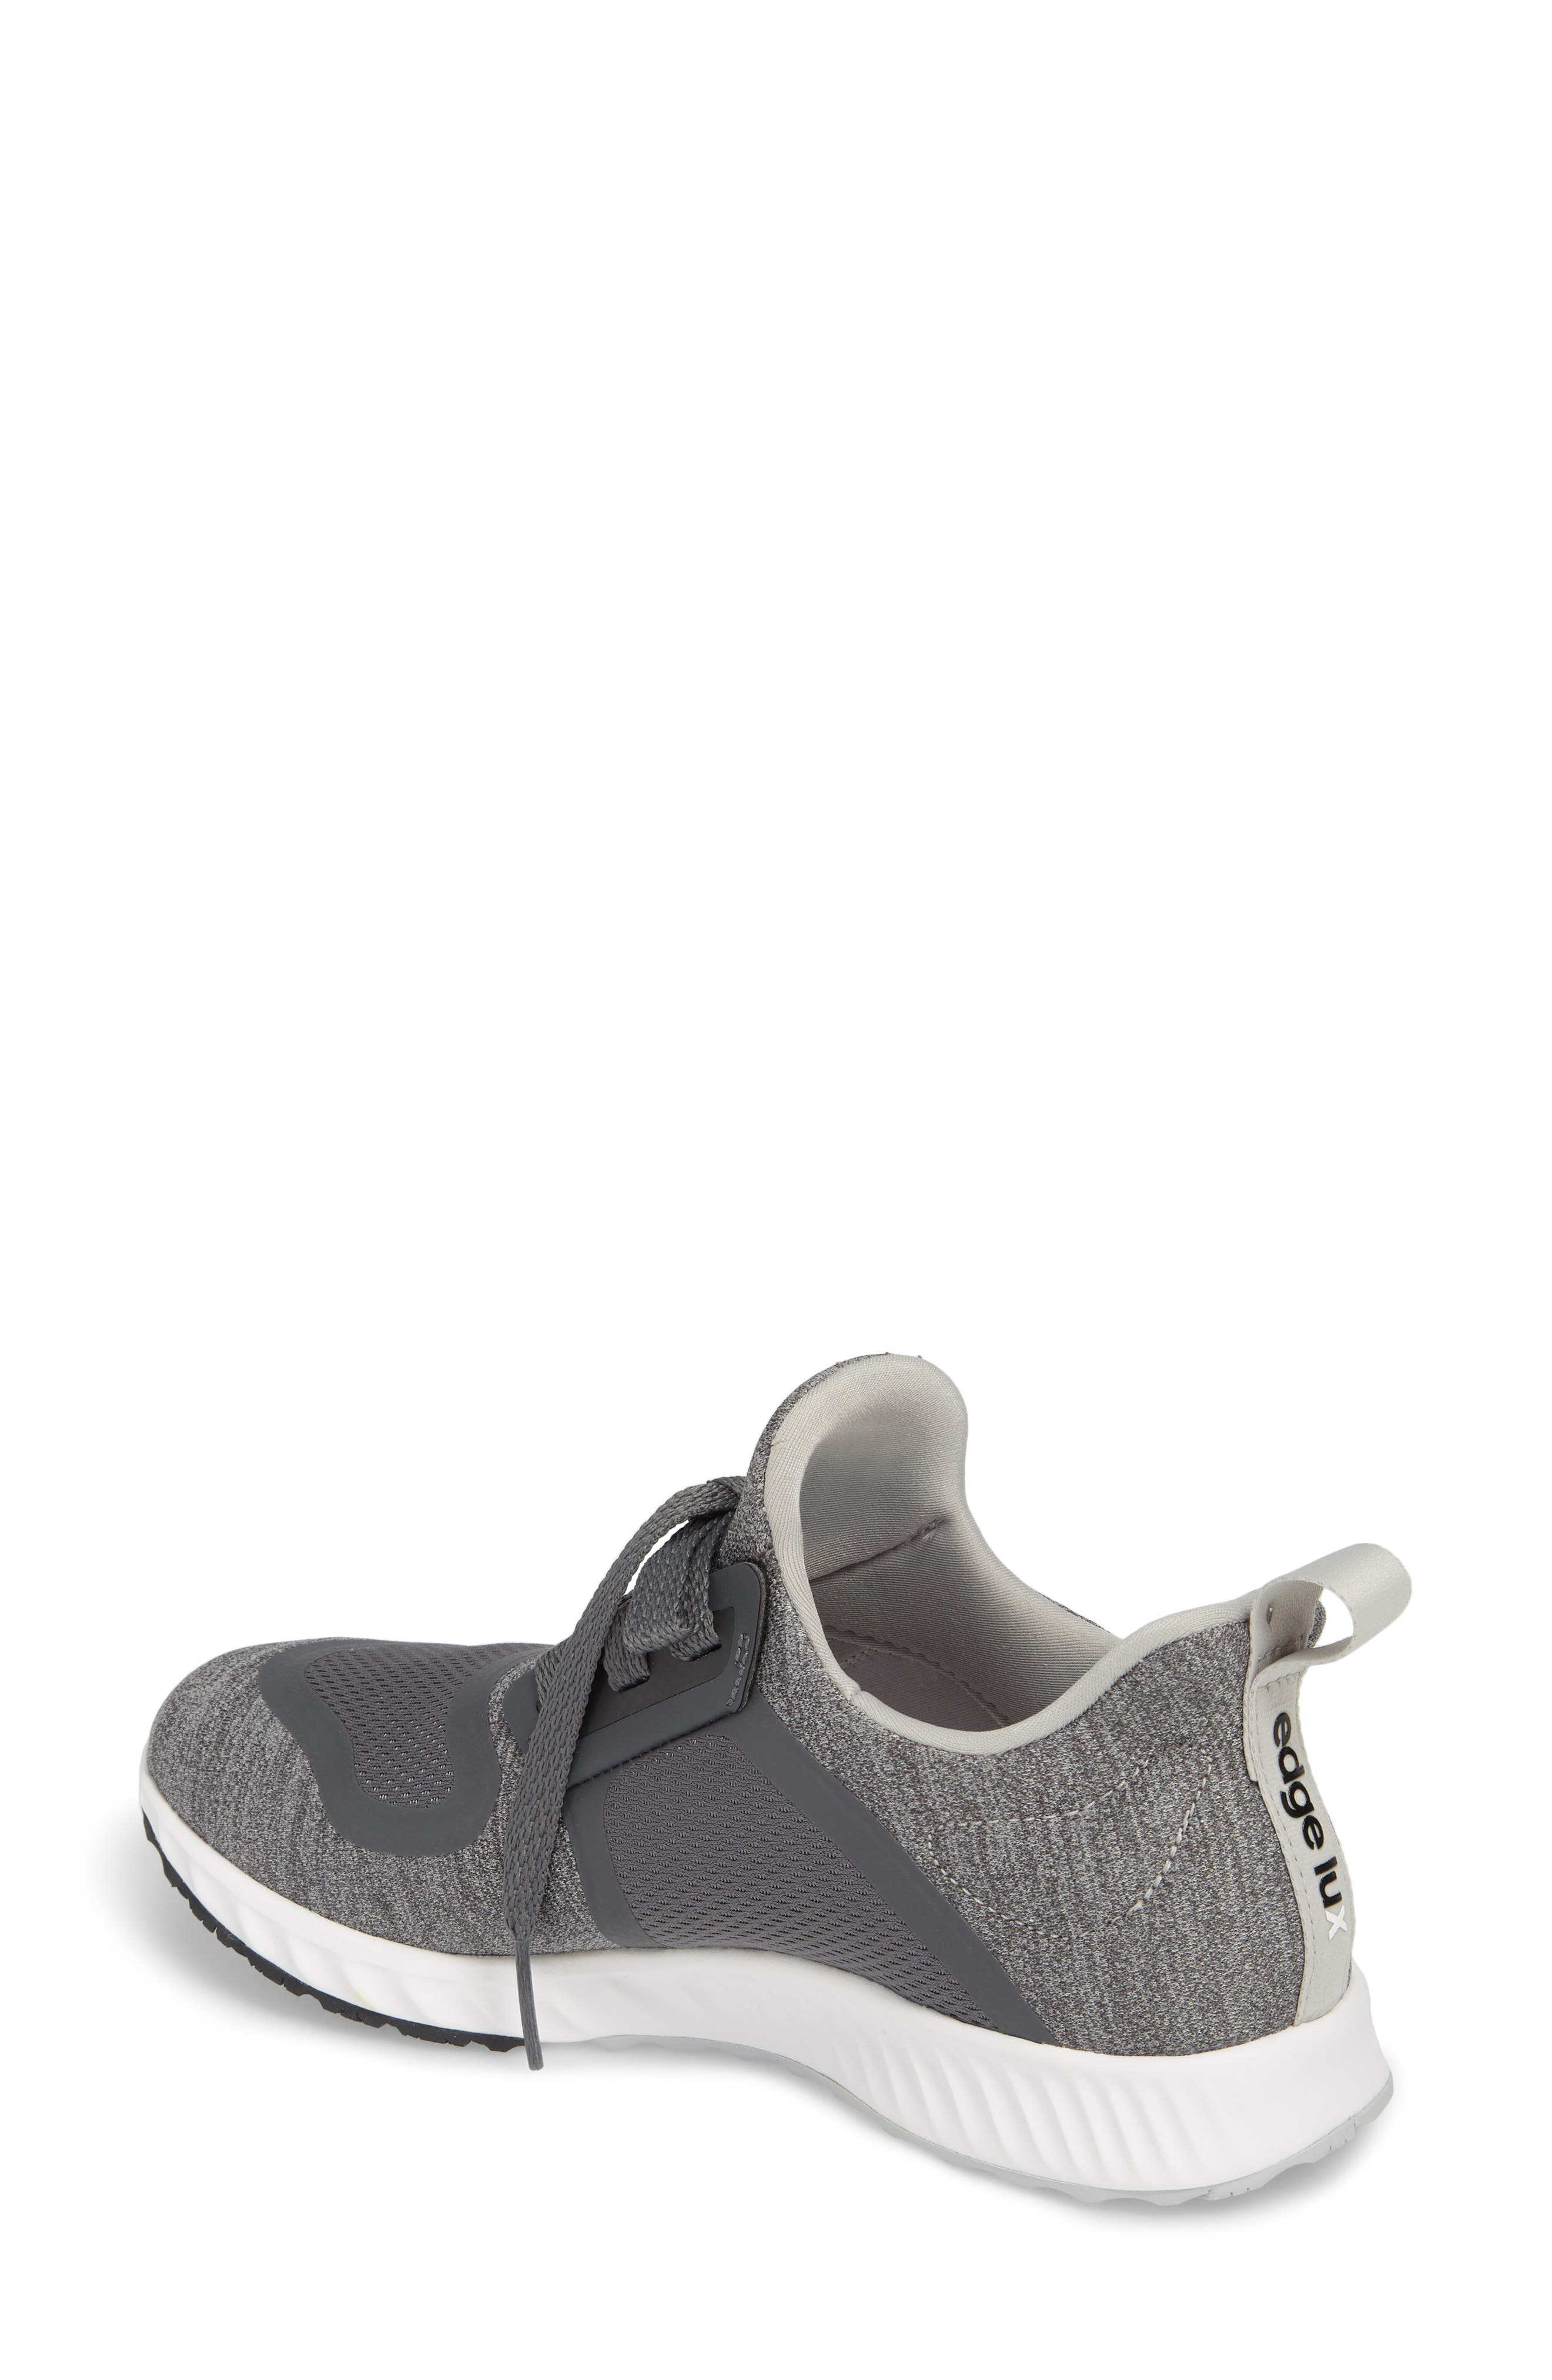 ADIDAS, Edge Lux Clima Running Shoe, Alternate thumbnail 2, color, 033